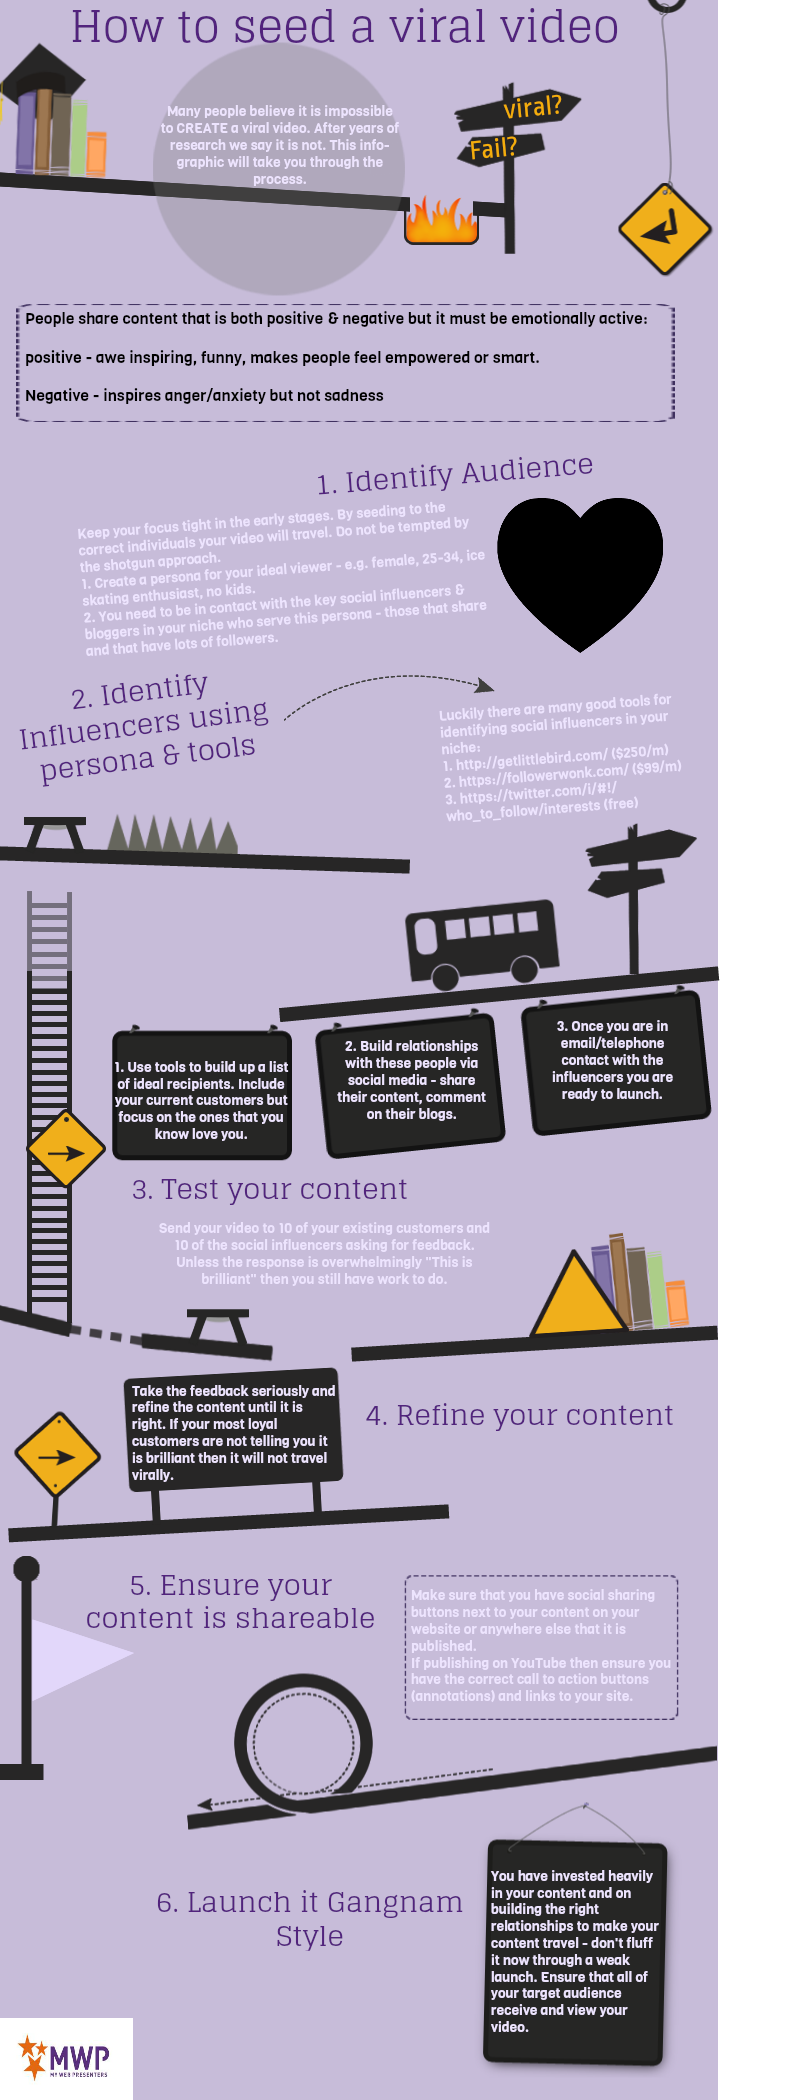 MWP-seeding-video-content-infographic.png